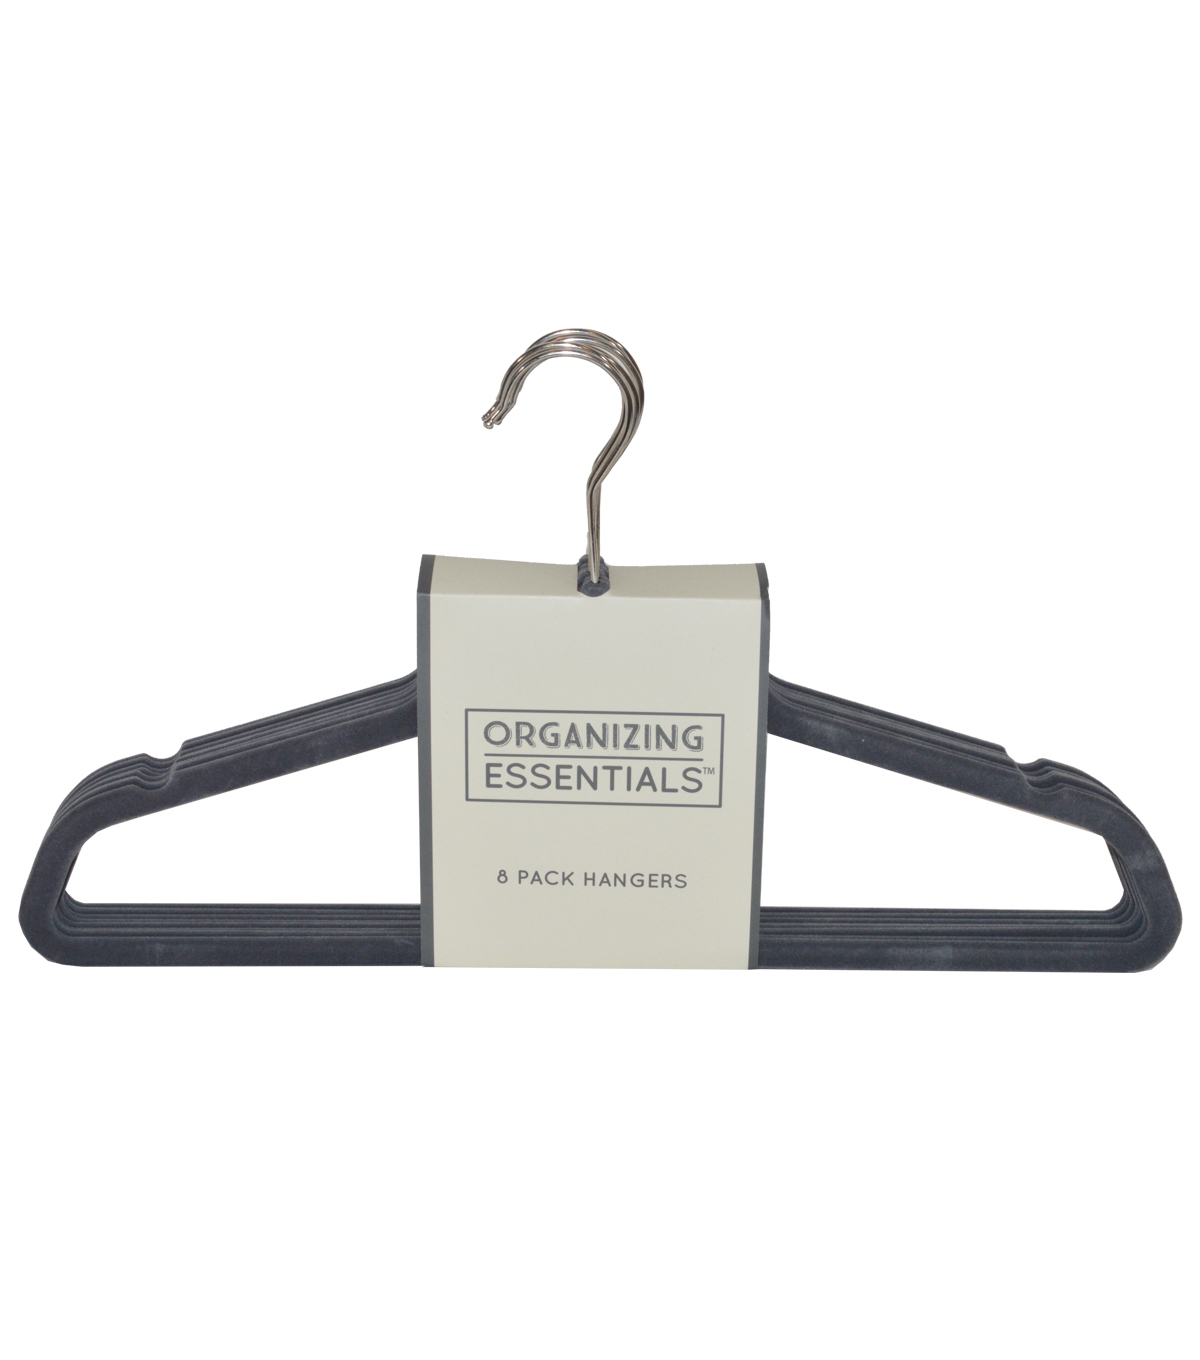 Organizing Essentials™ 8 Pack Hangers-Gray & Silver